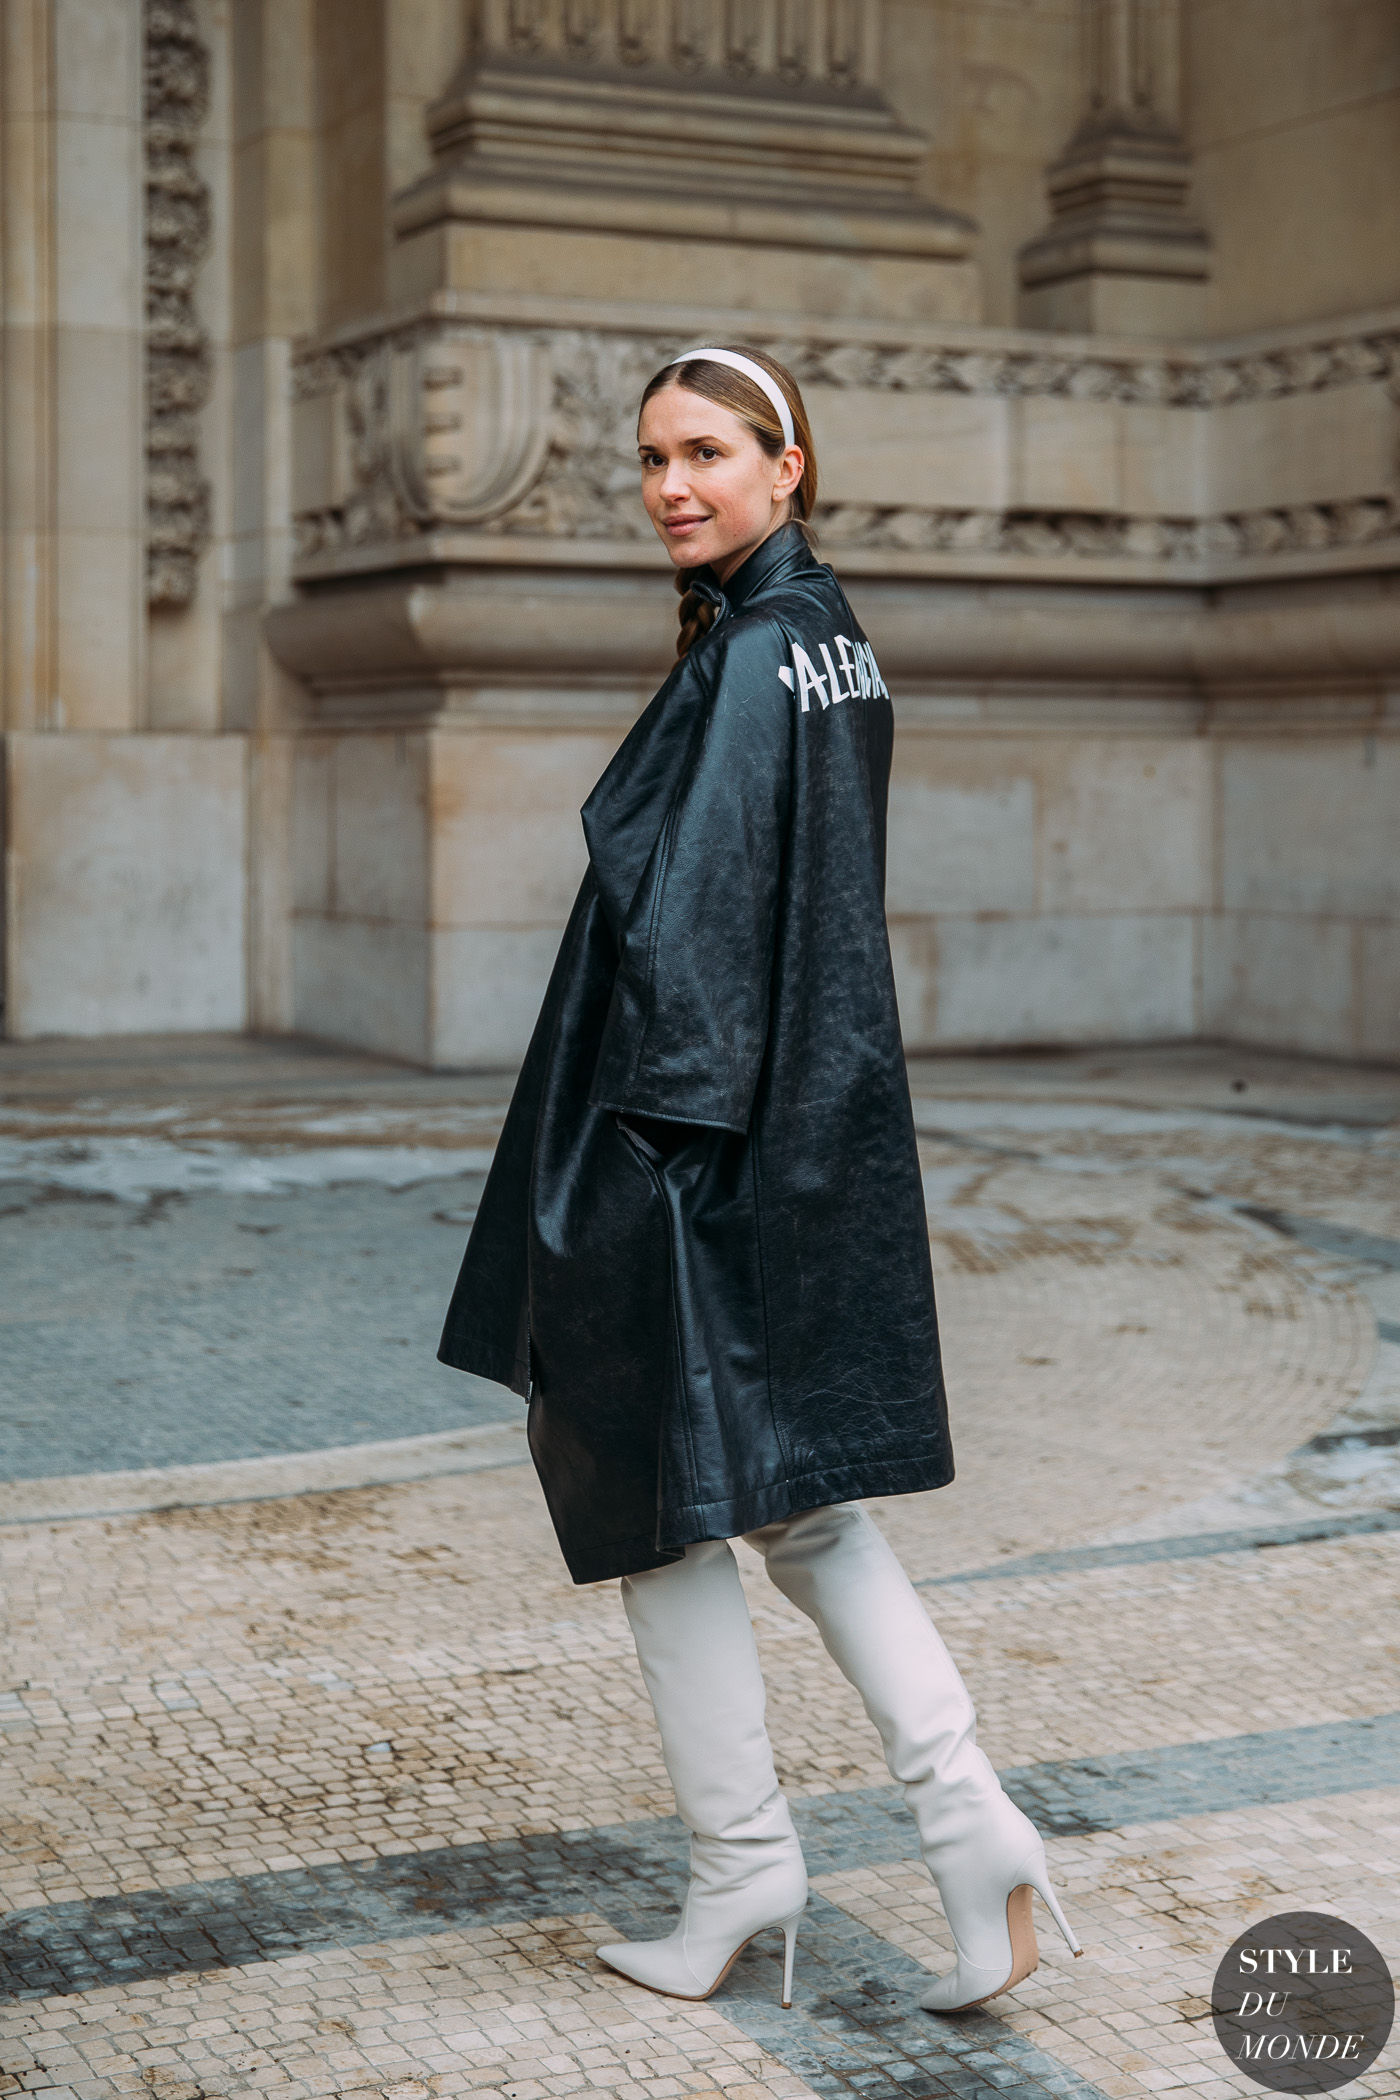 Pernille Teisbaek by STYLEDUMONDE Street Style Fashion Photography FW18 20180301_48A2158